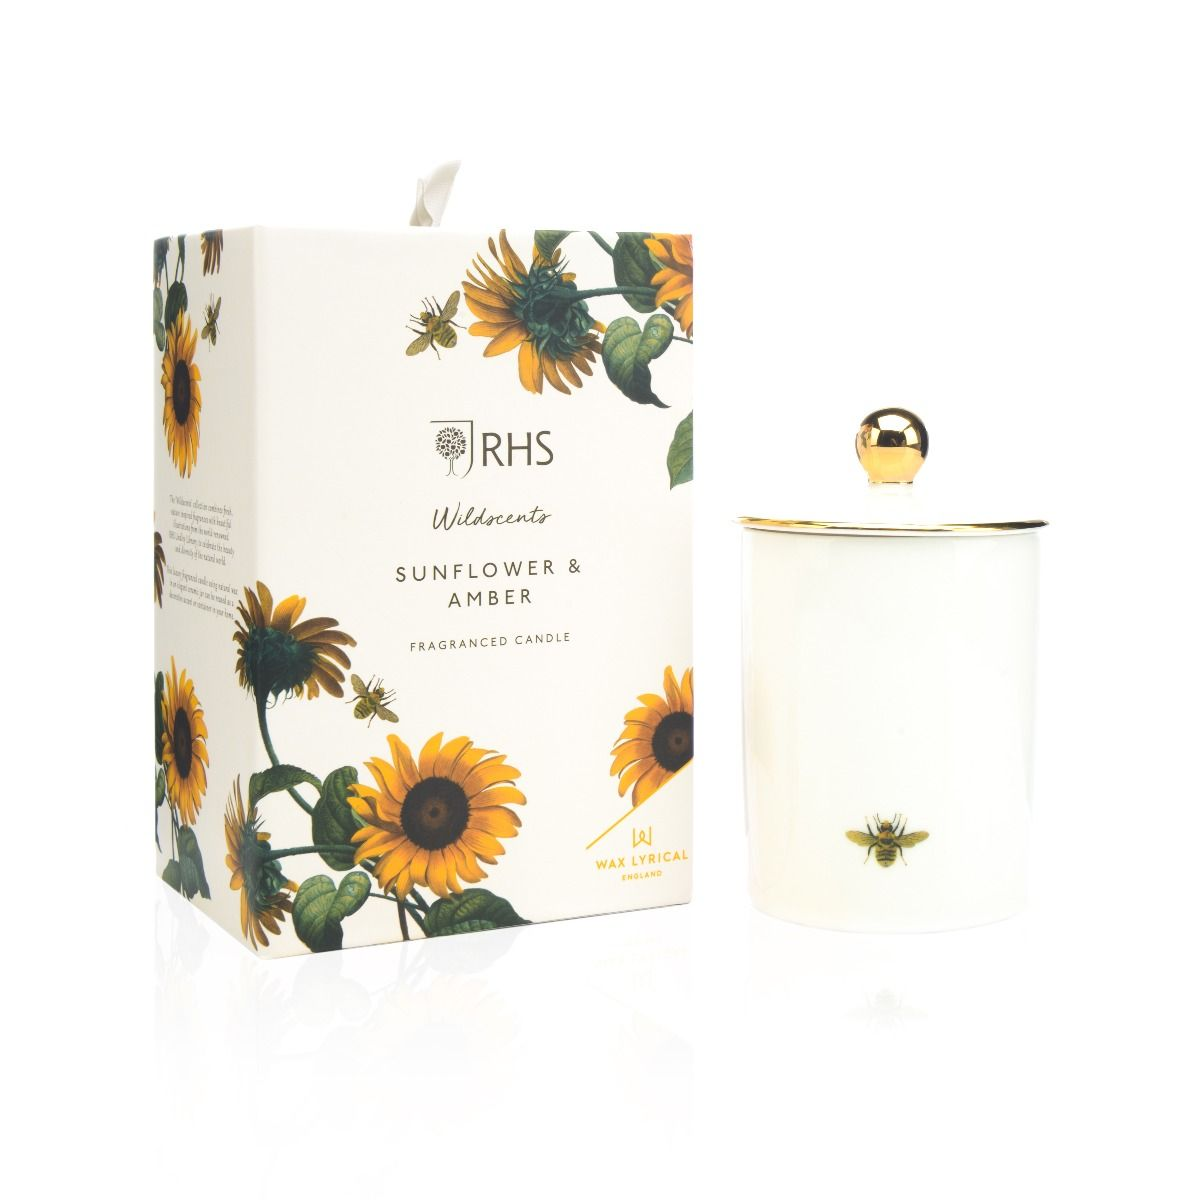 Sunflower & Amber Ceramic Candle